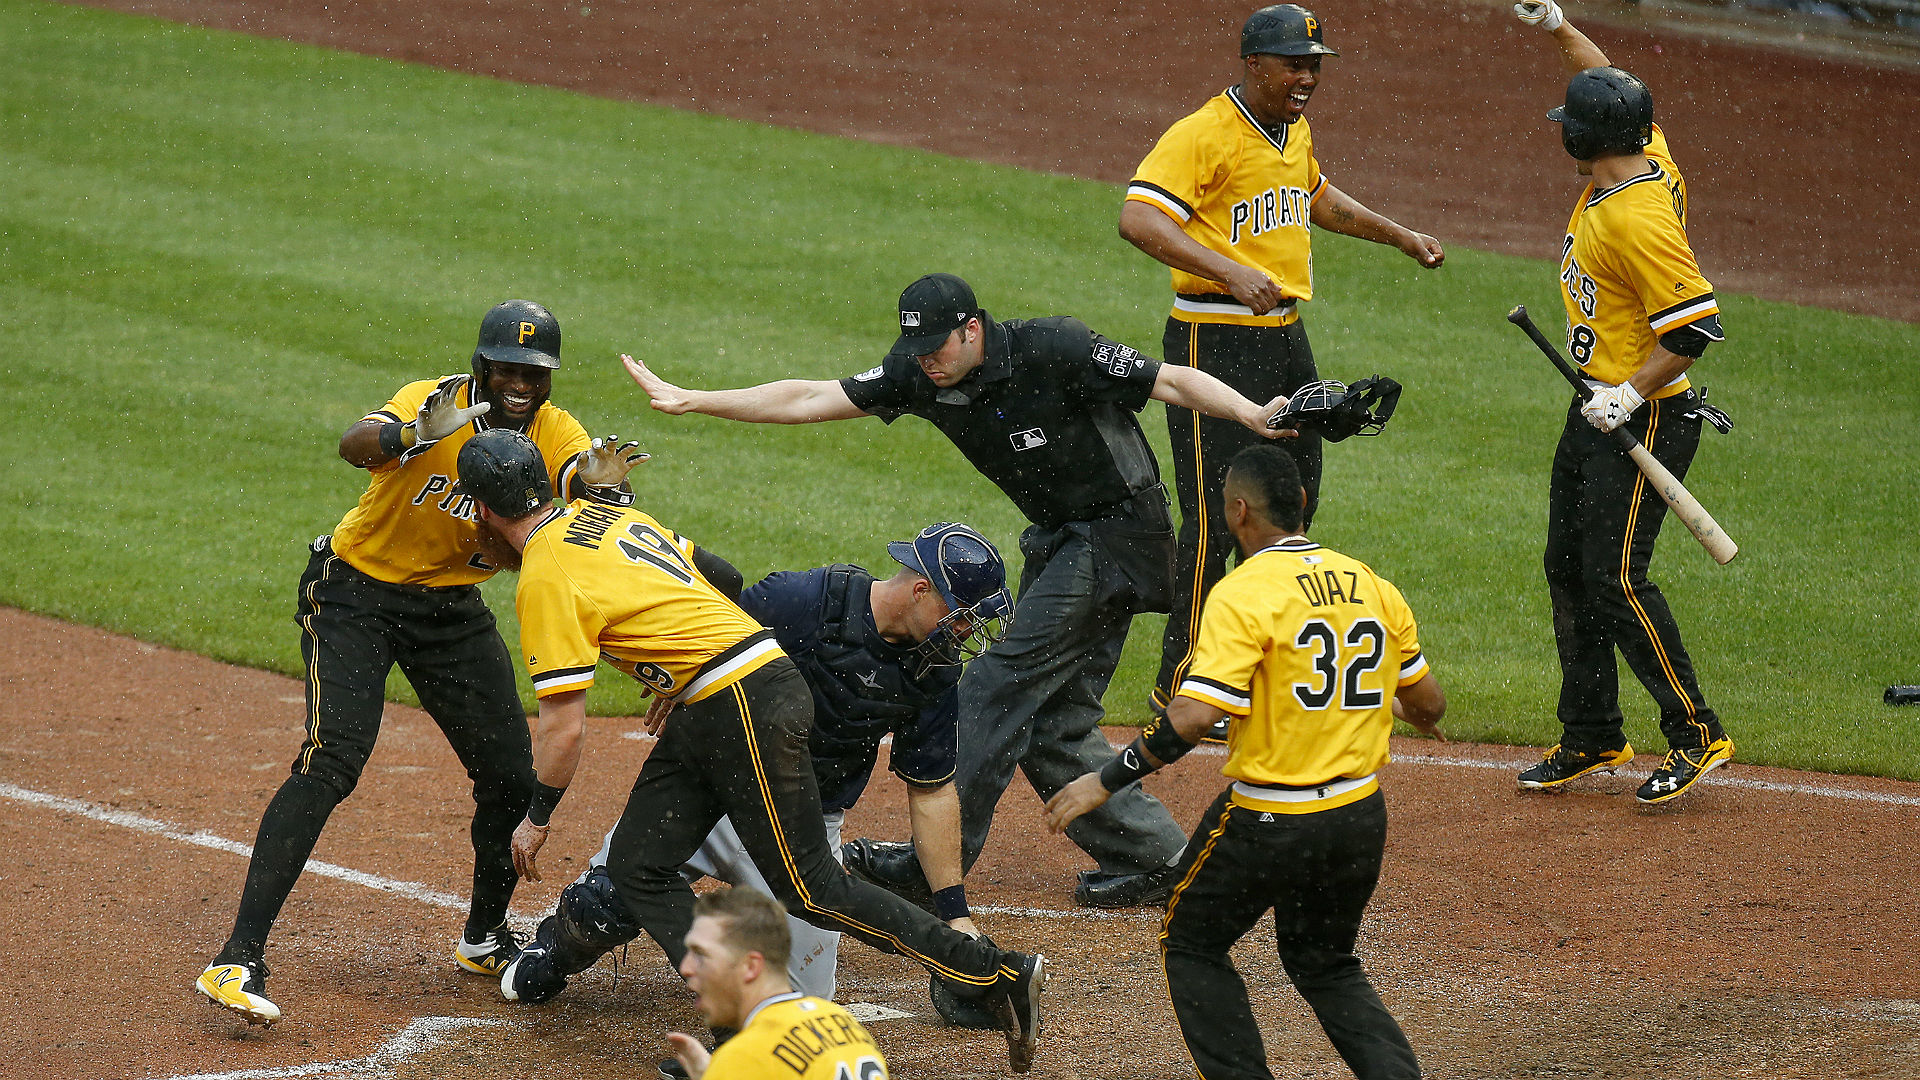 Pittsburgh Pirates top Brewers, 7-3, behind Polanco, Kingham